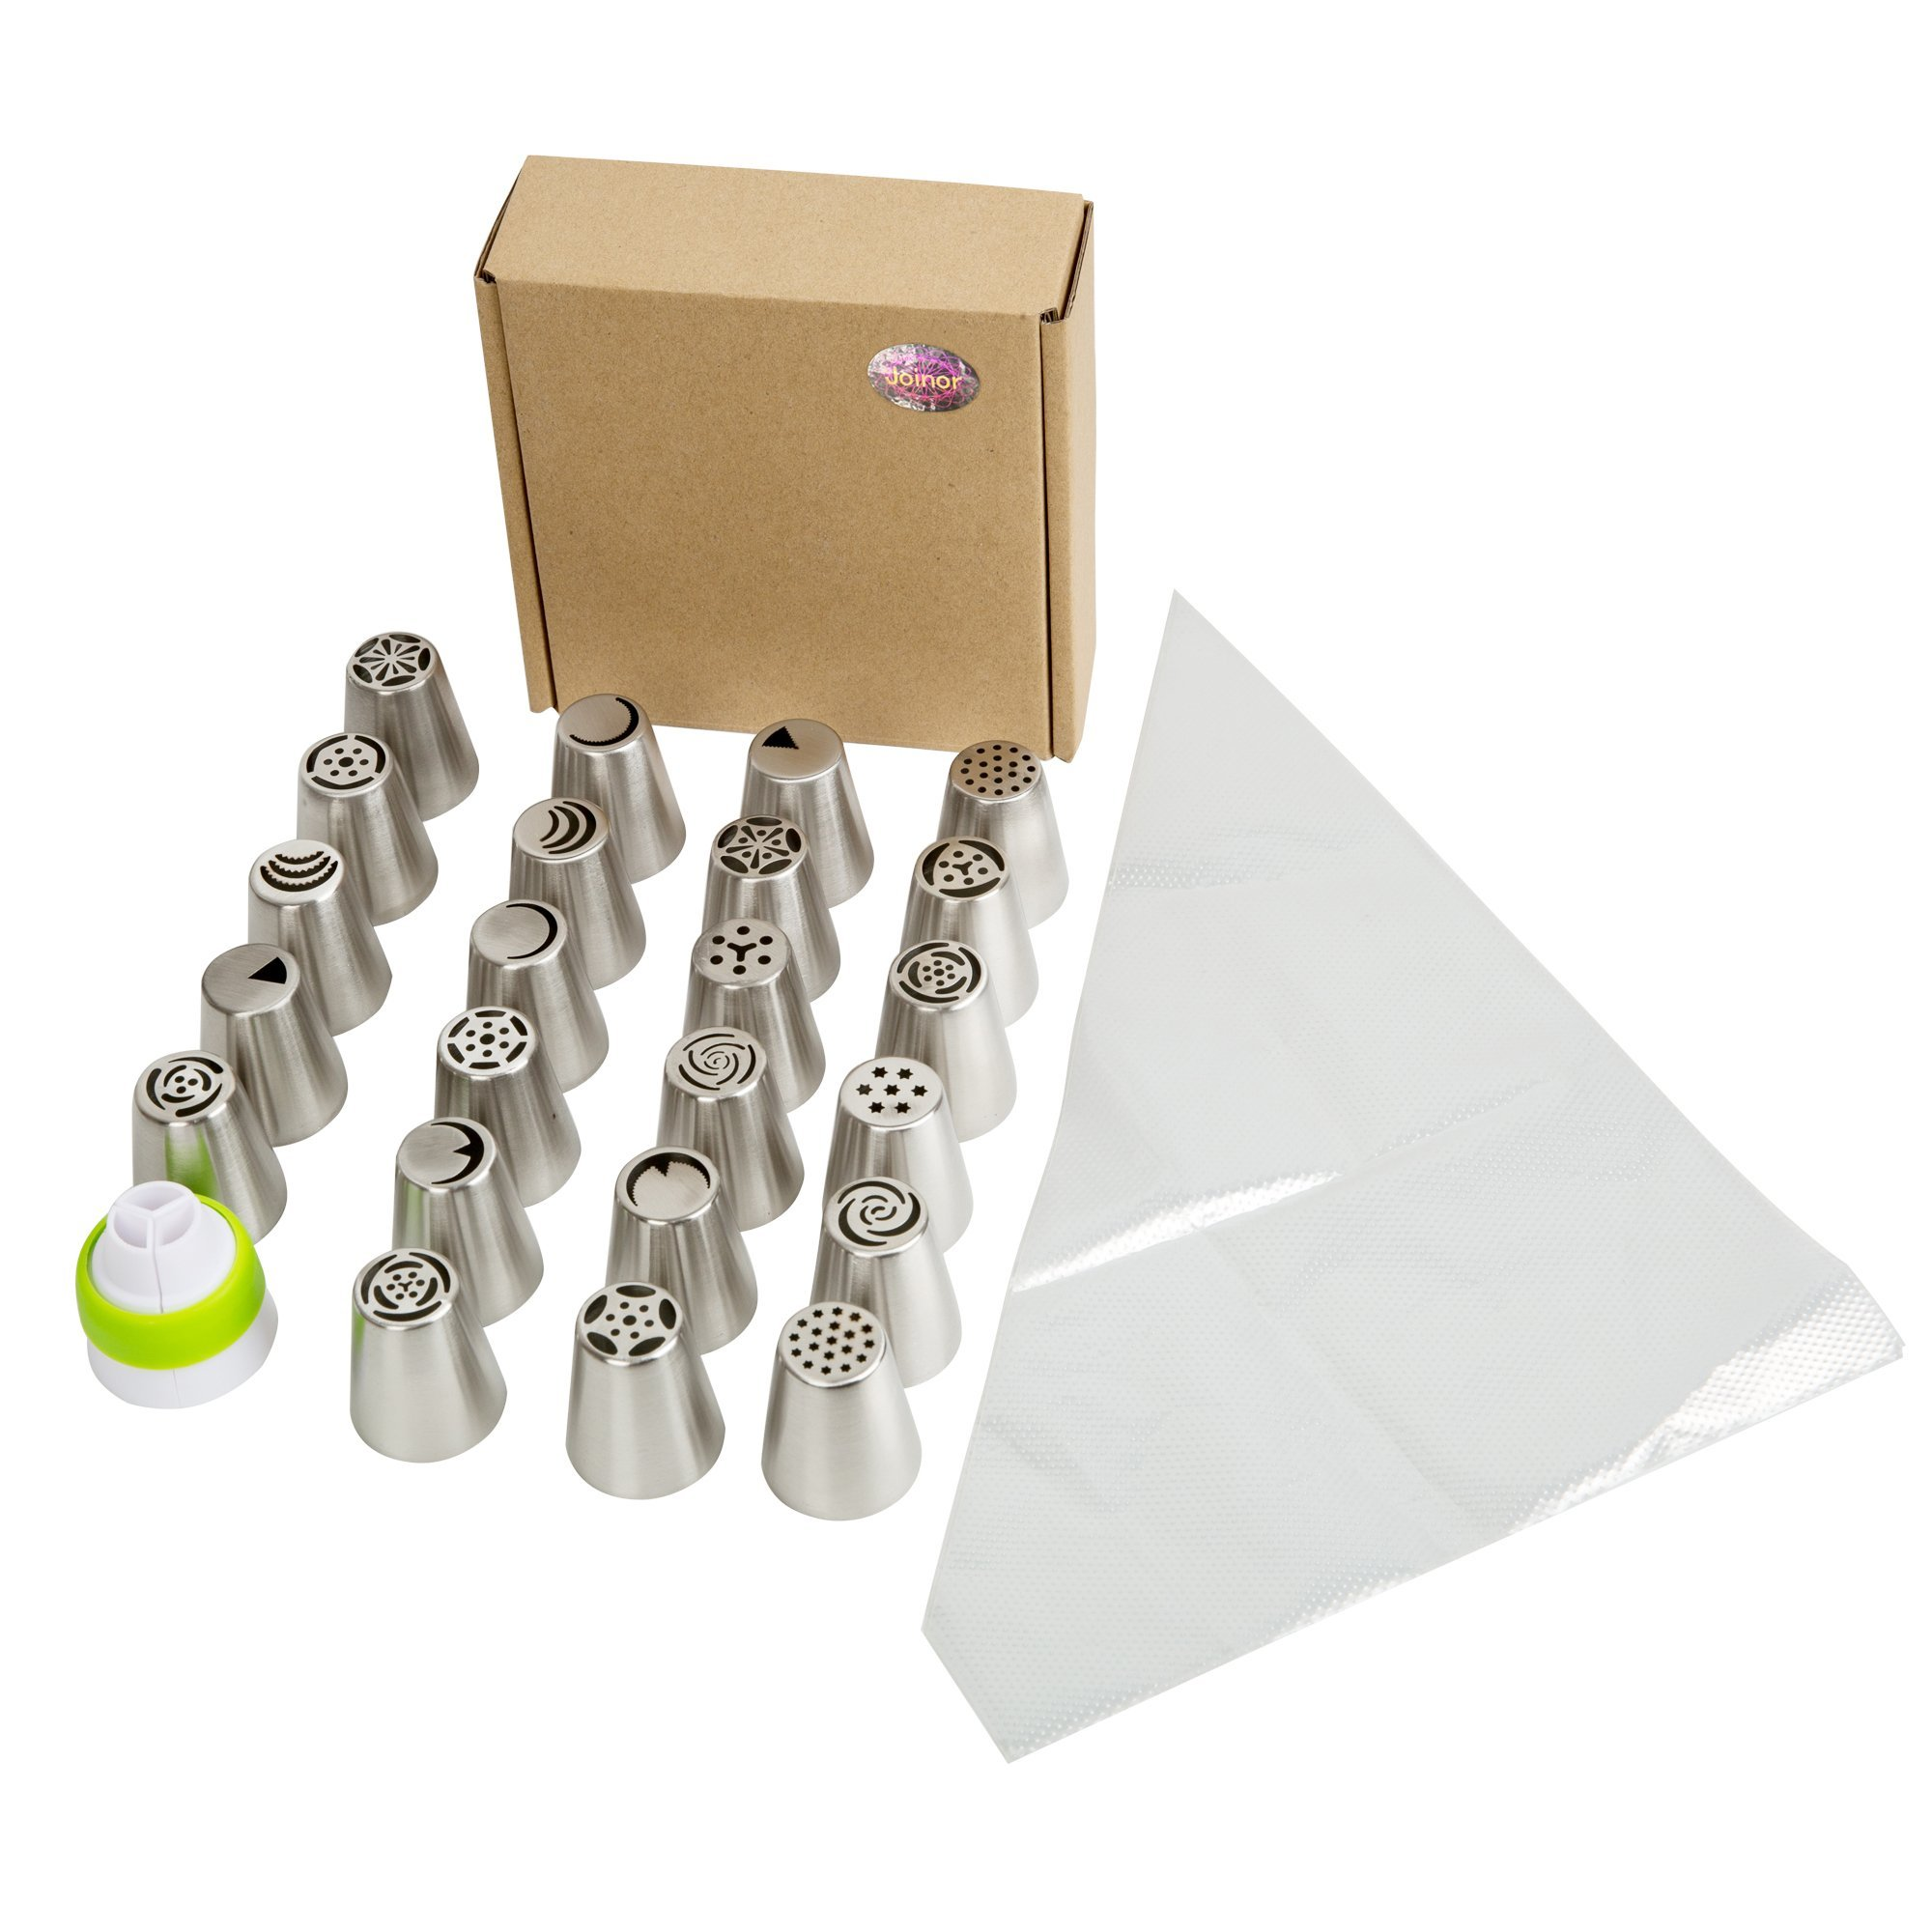 Joinor Russian Piping Tips Set 28PCS/SET(23 Nozzles+4 Pastry Bags+Coupler) 304 Stainless Nozzle Kit for Decorating Cake and Icing Cupcake